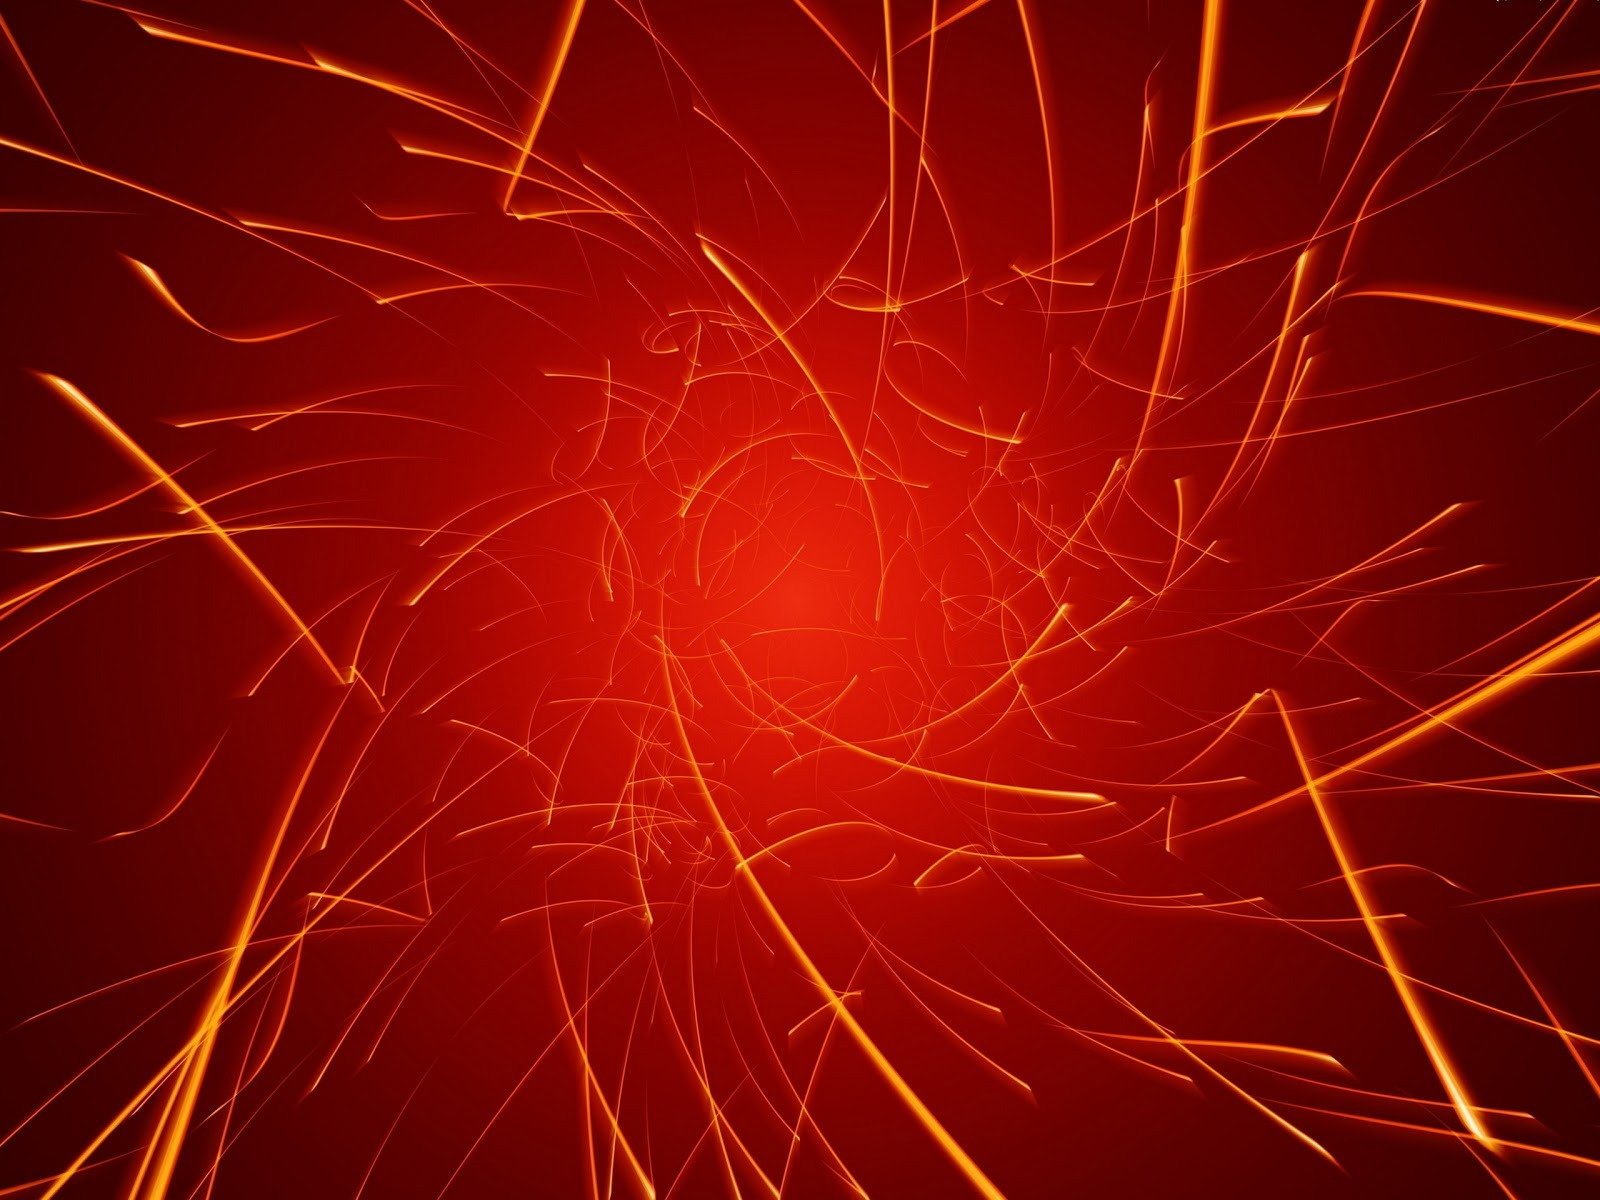 http://1.bp.blogspot.com/-eQ5IXYIPkeA/UKEAXq-0i3I/AAAAAAAAAO8/iHfwSvDVzbQ/s1600/abstract-wallpaper-red-with-orange.jpg